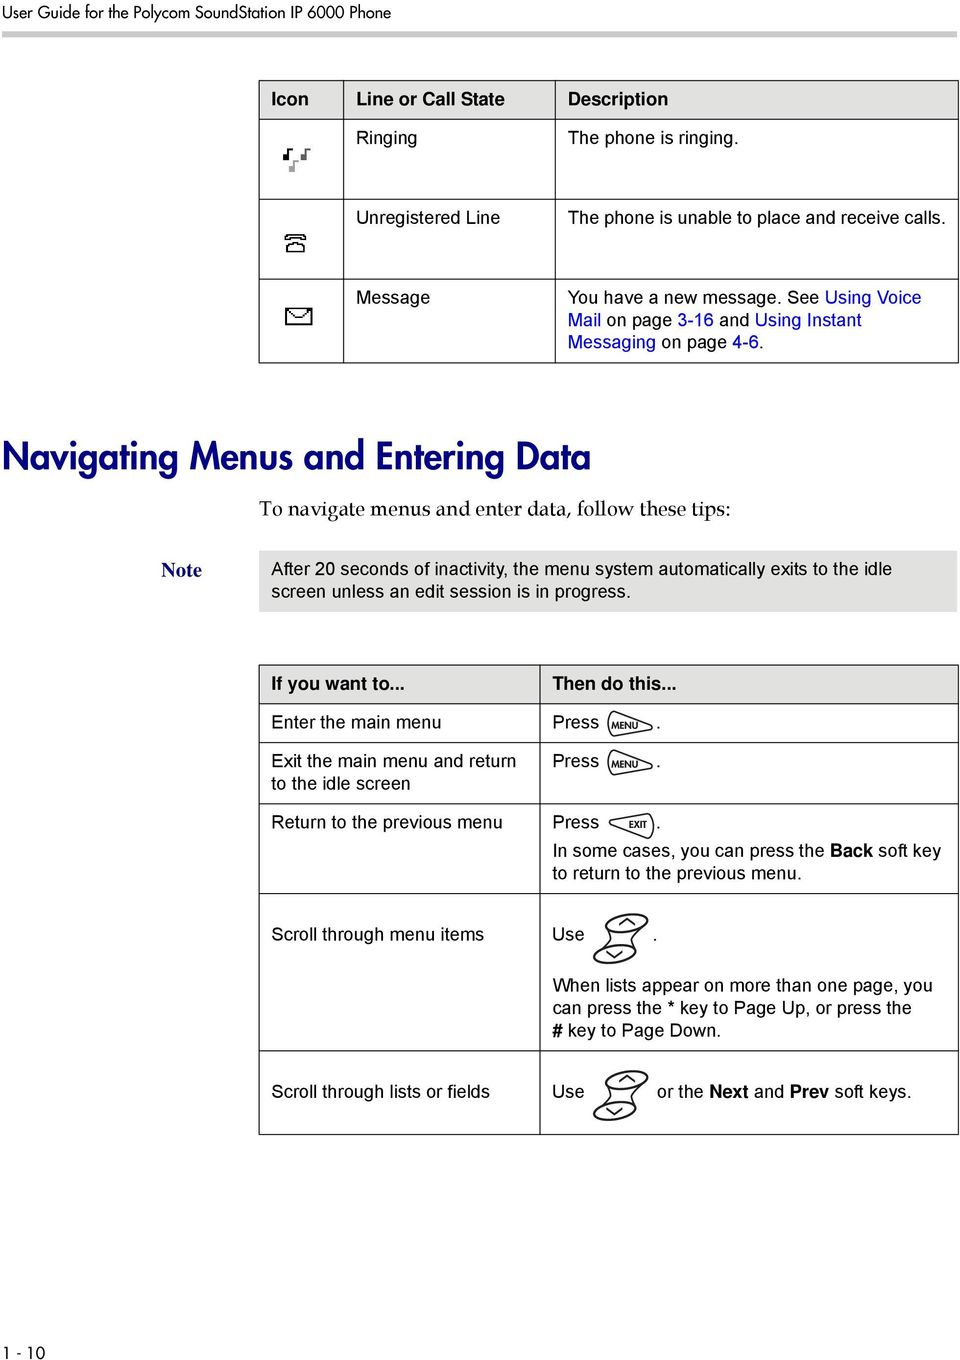 Navigating Menus and Entering Data To navigate menus and enter data, follow these tips: Note After 20 seconds of inactivity, the menu system automatically exits to the idle screen unless an edit